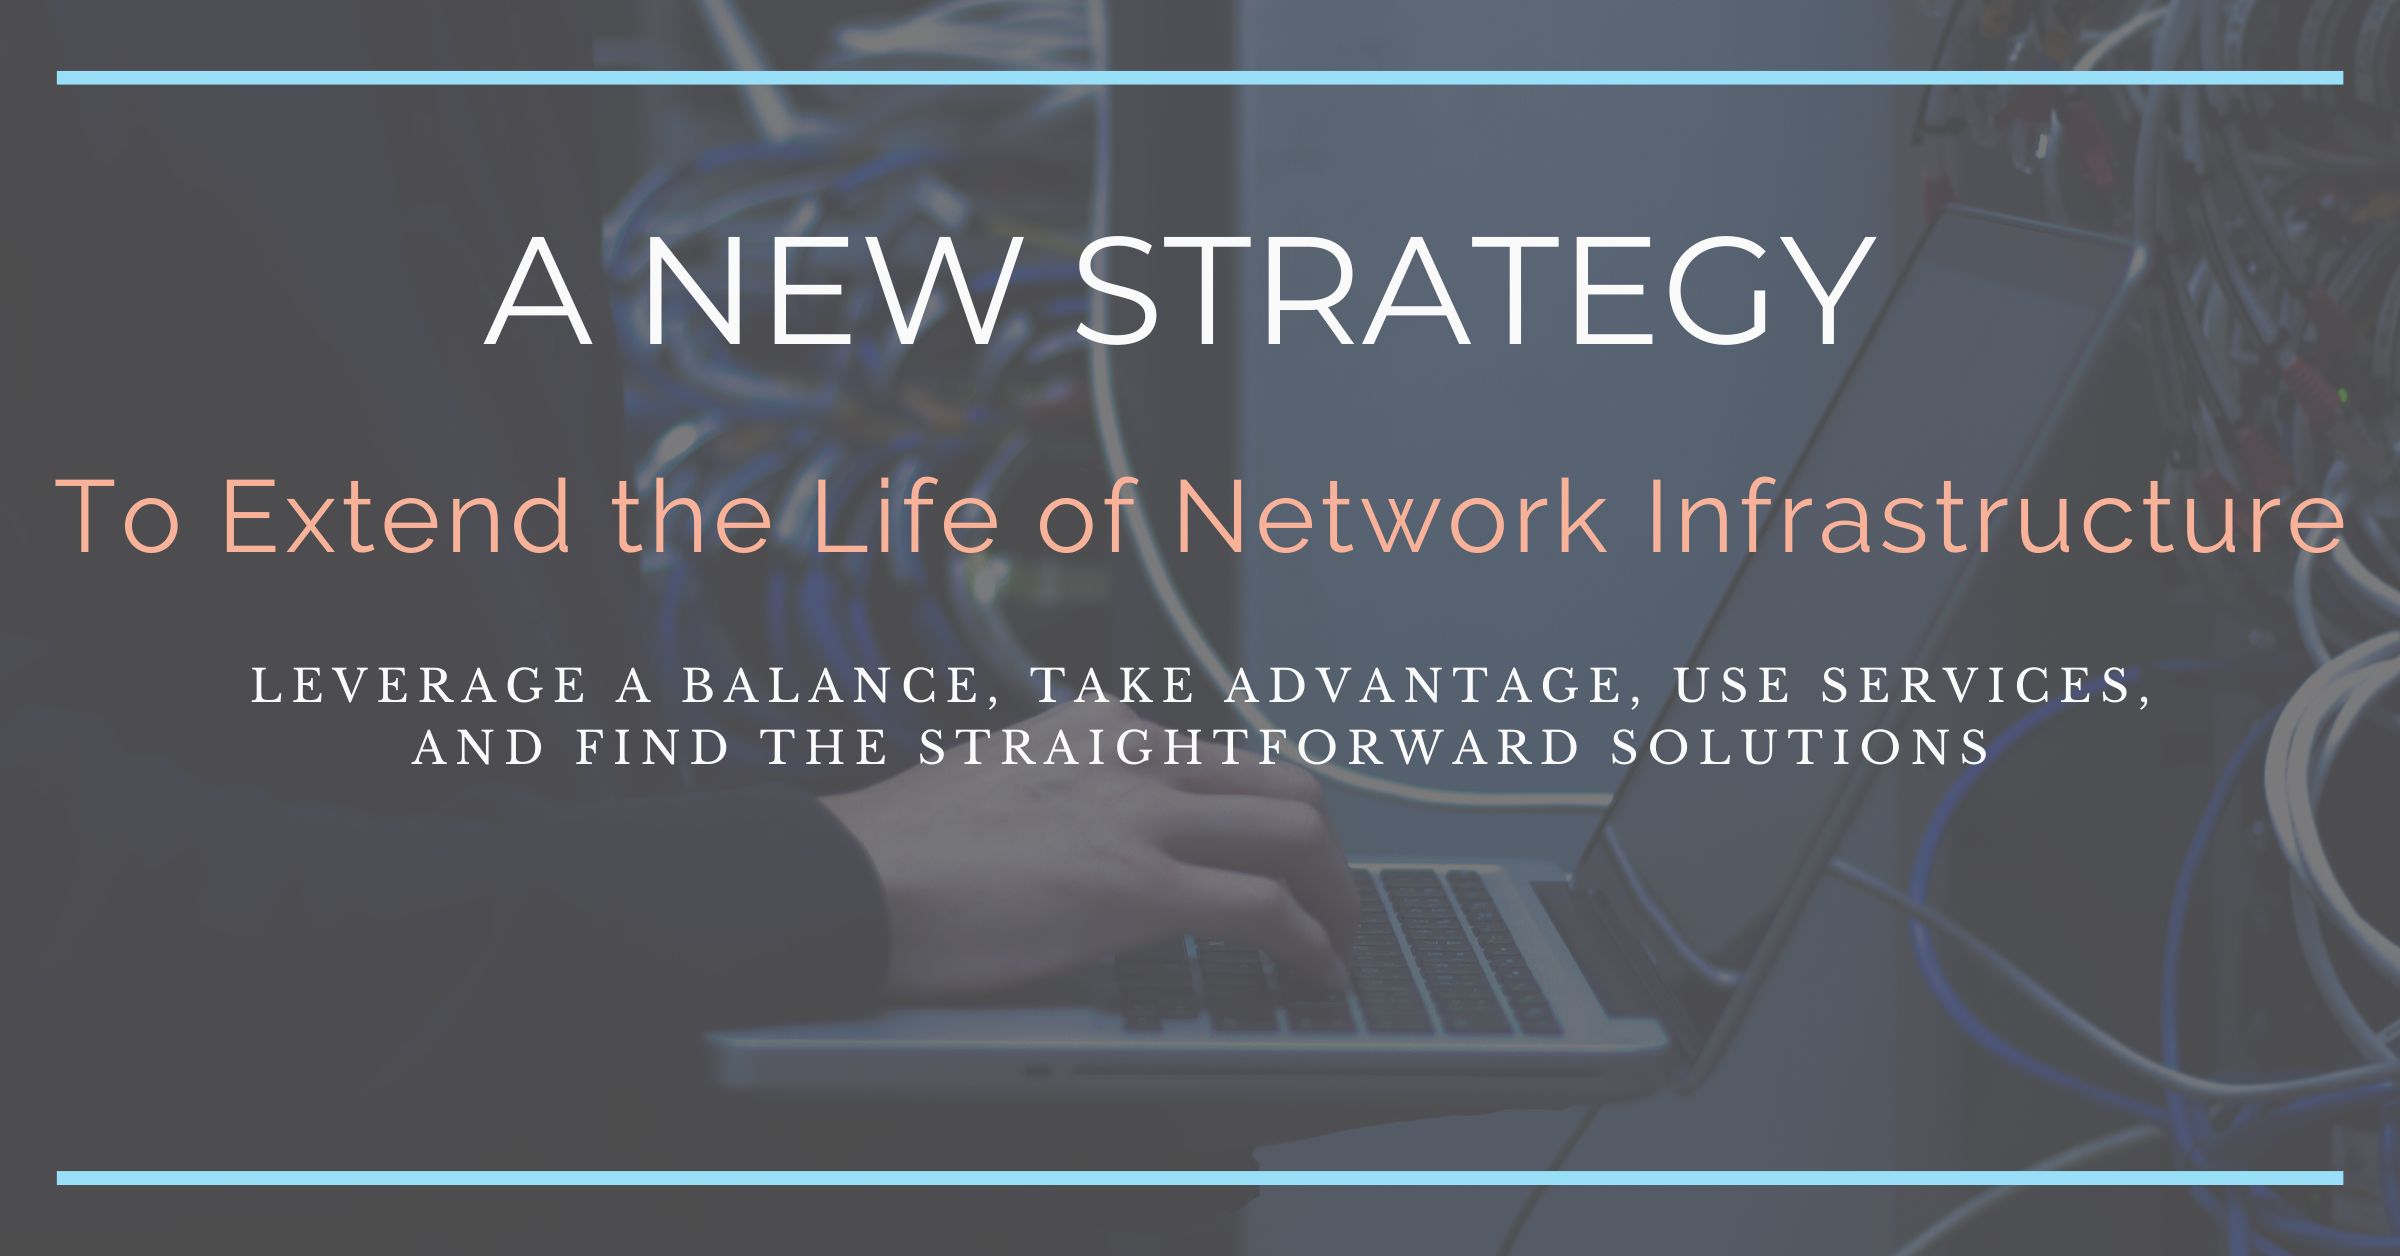 Extending the Useful Life of Your Existing Network Infrastructure